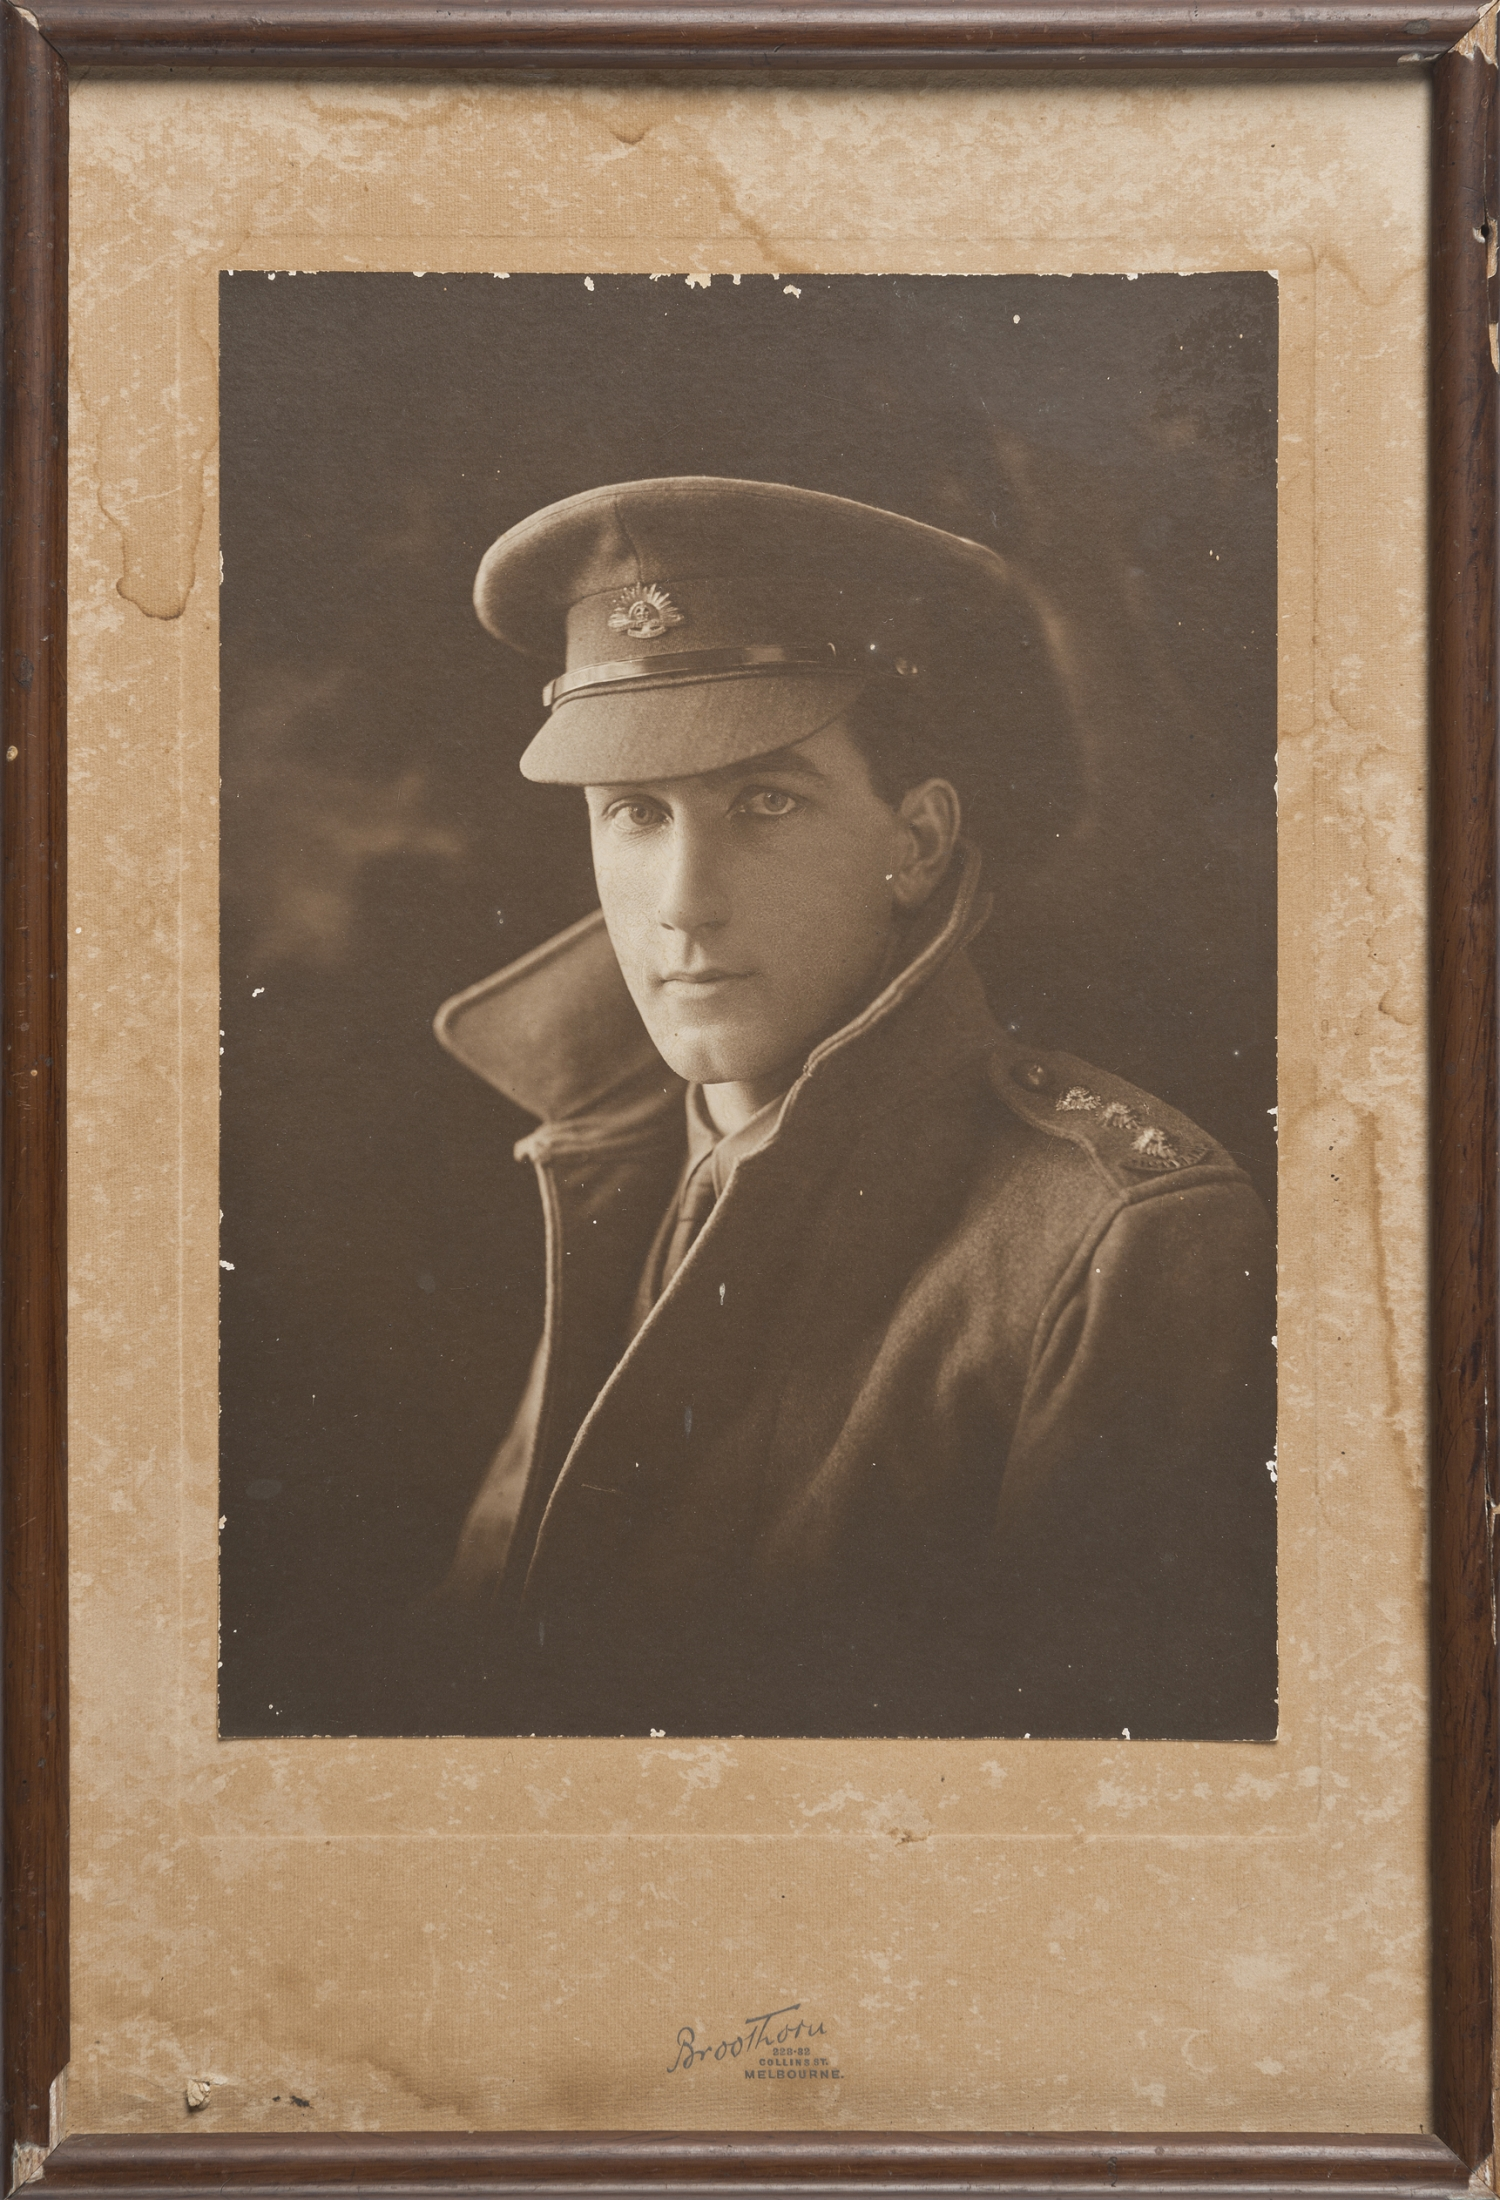 Framed sepia toned photograph of man in uniform.